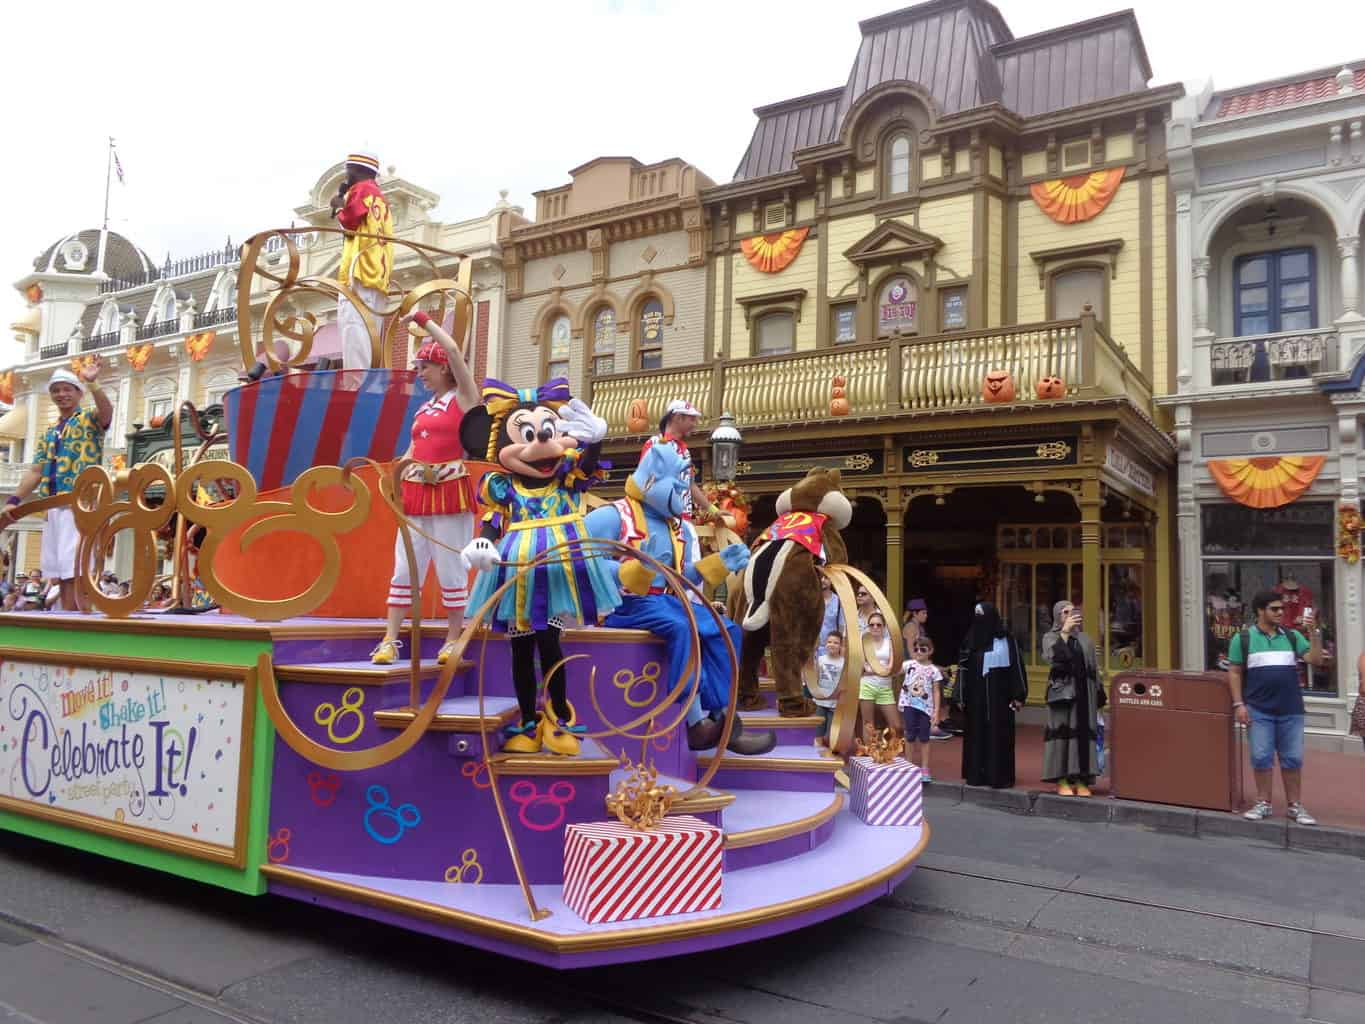 13 Helpful Tips for Enjoying Your Disney Vacation 2020